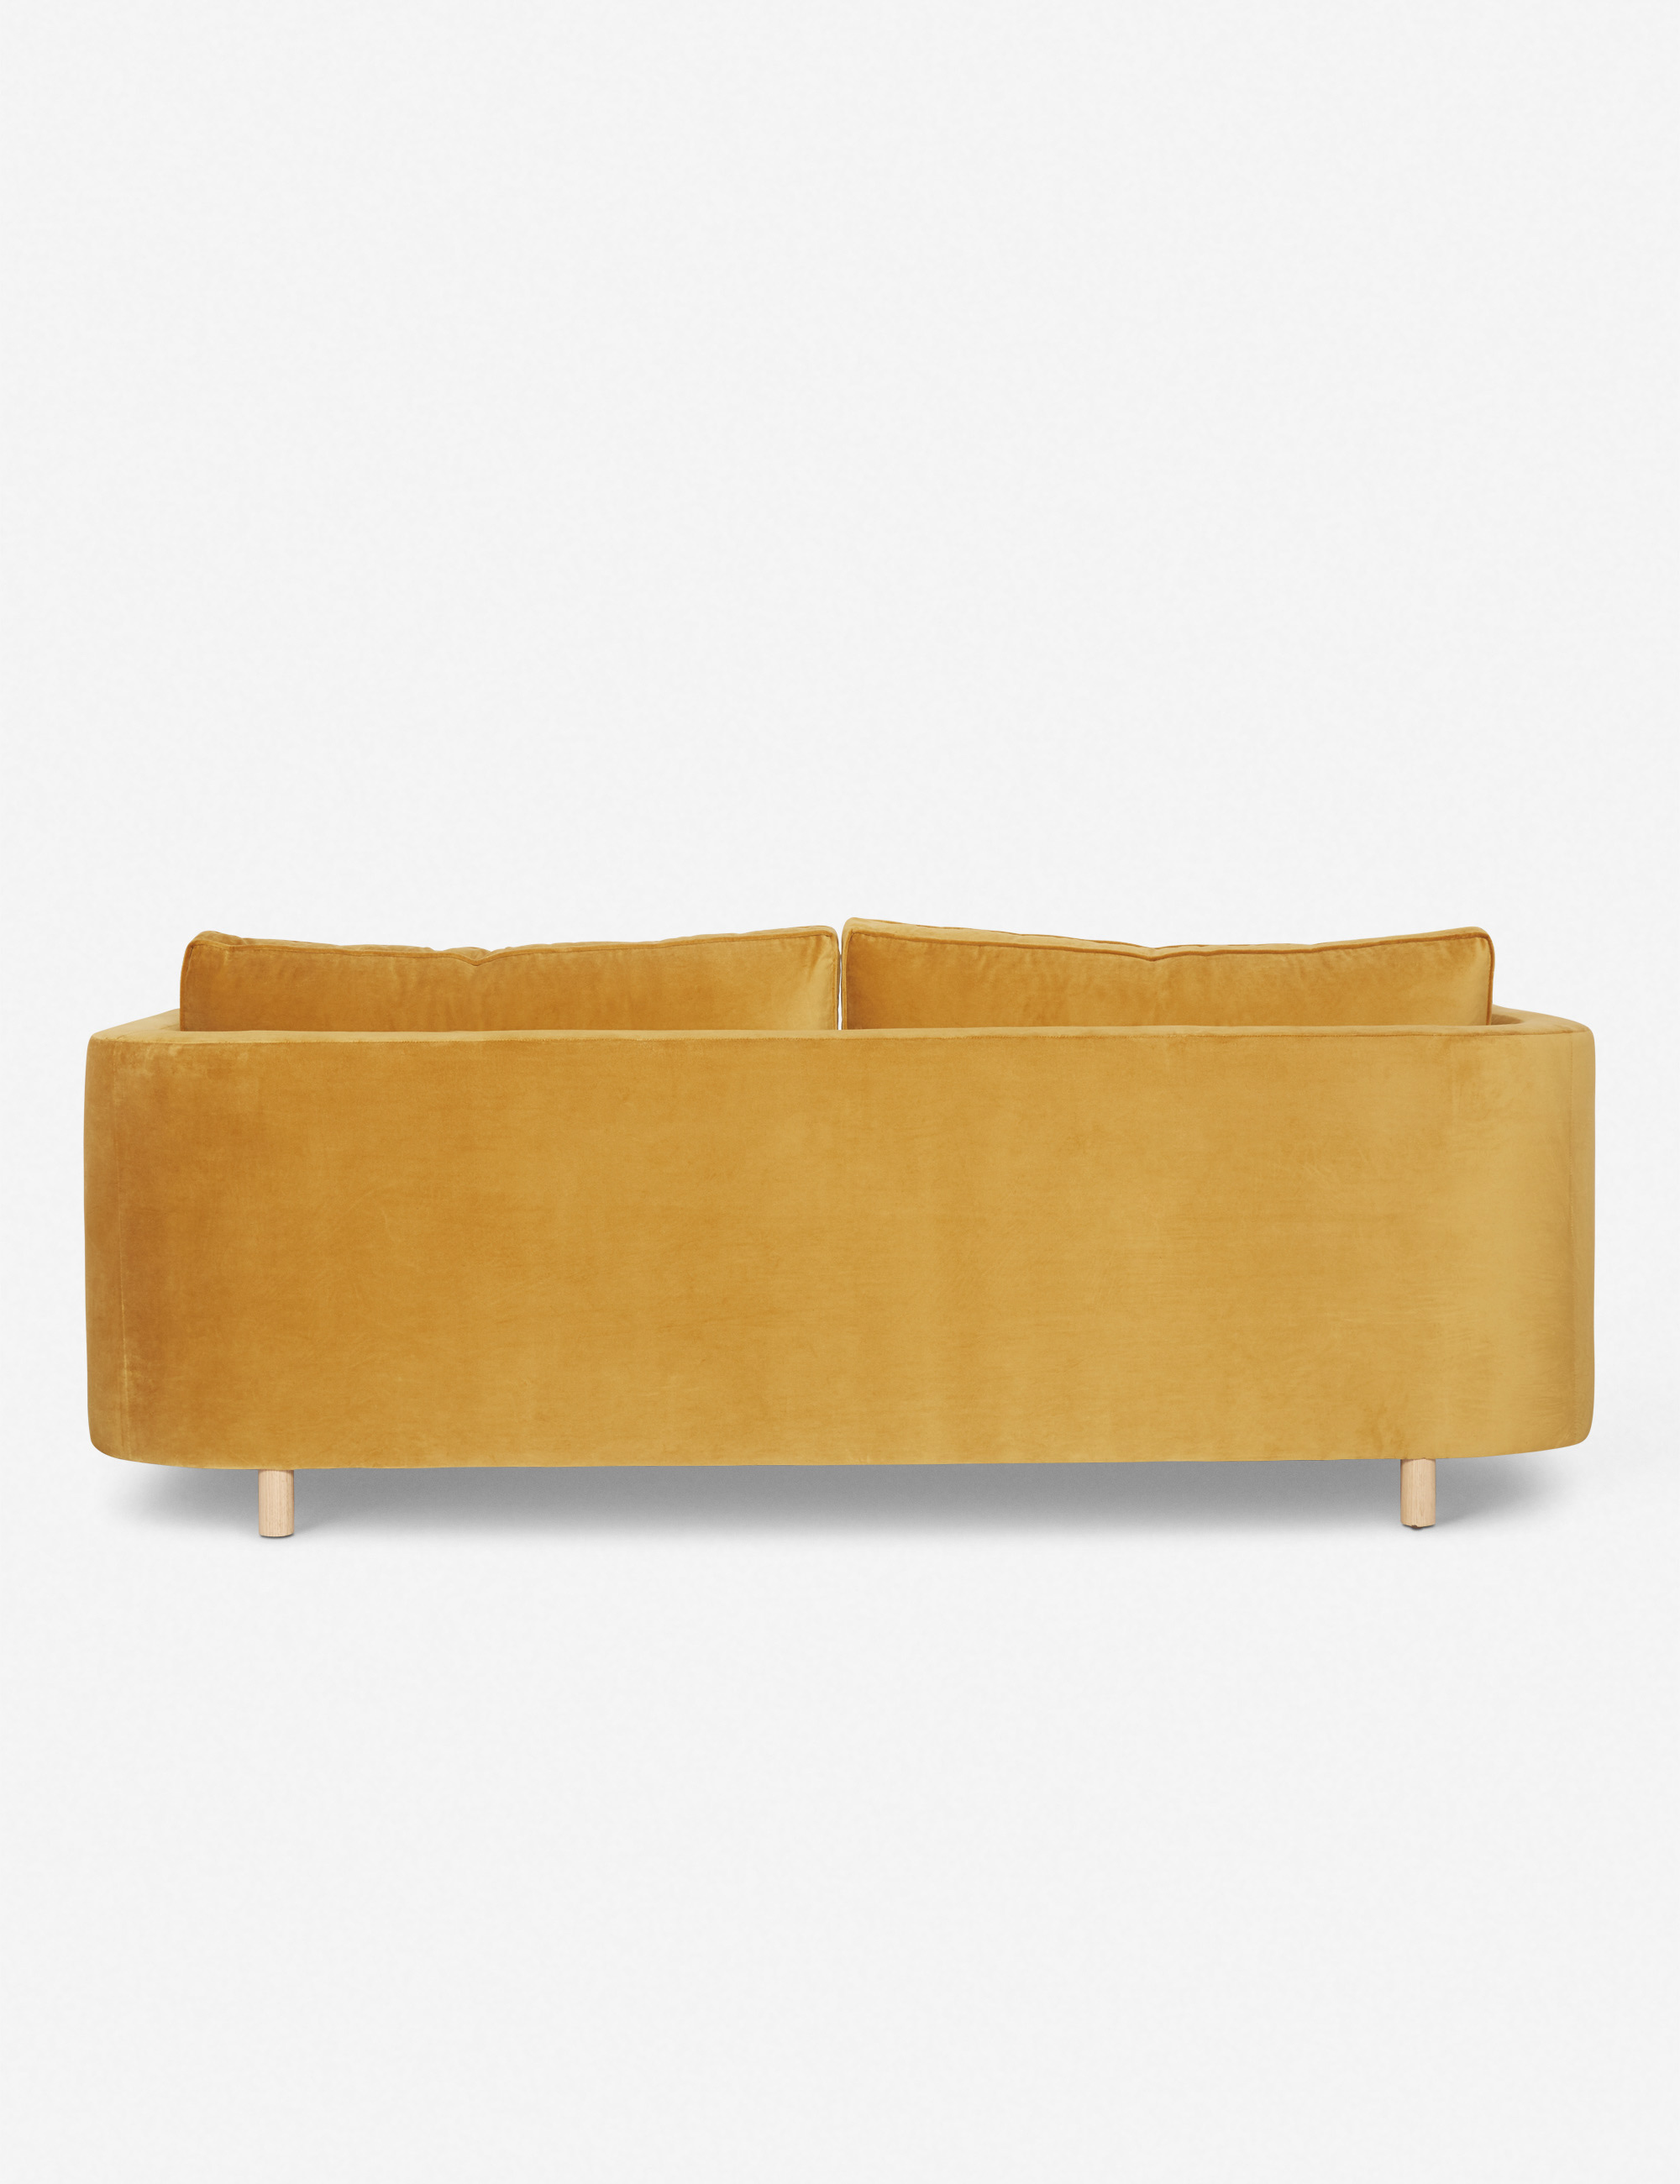 GINNY_MACDONALD_BELMONT-SOFA-golden-rod-5